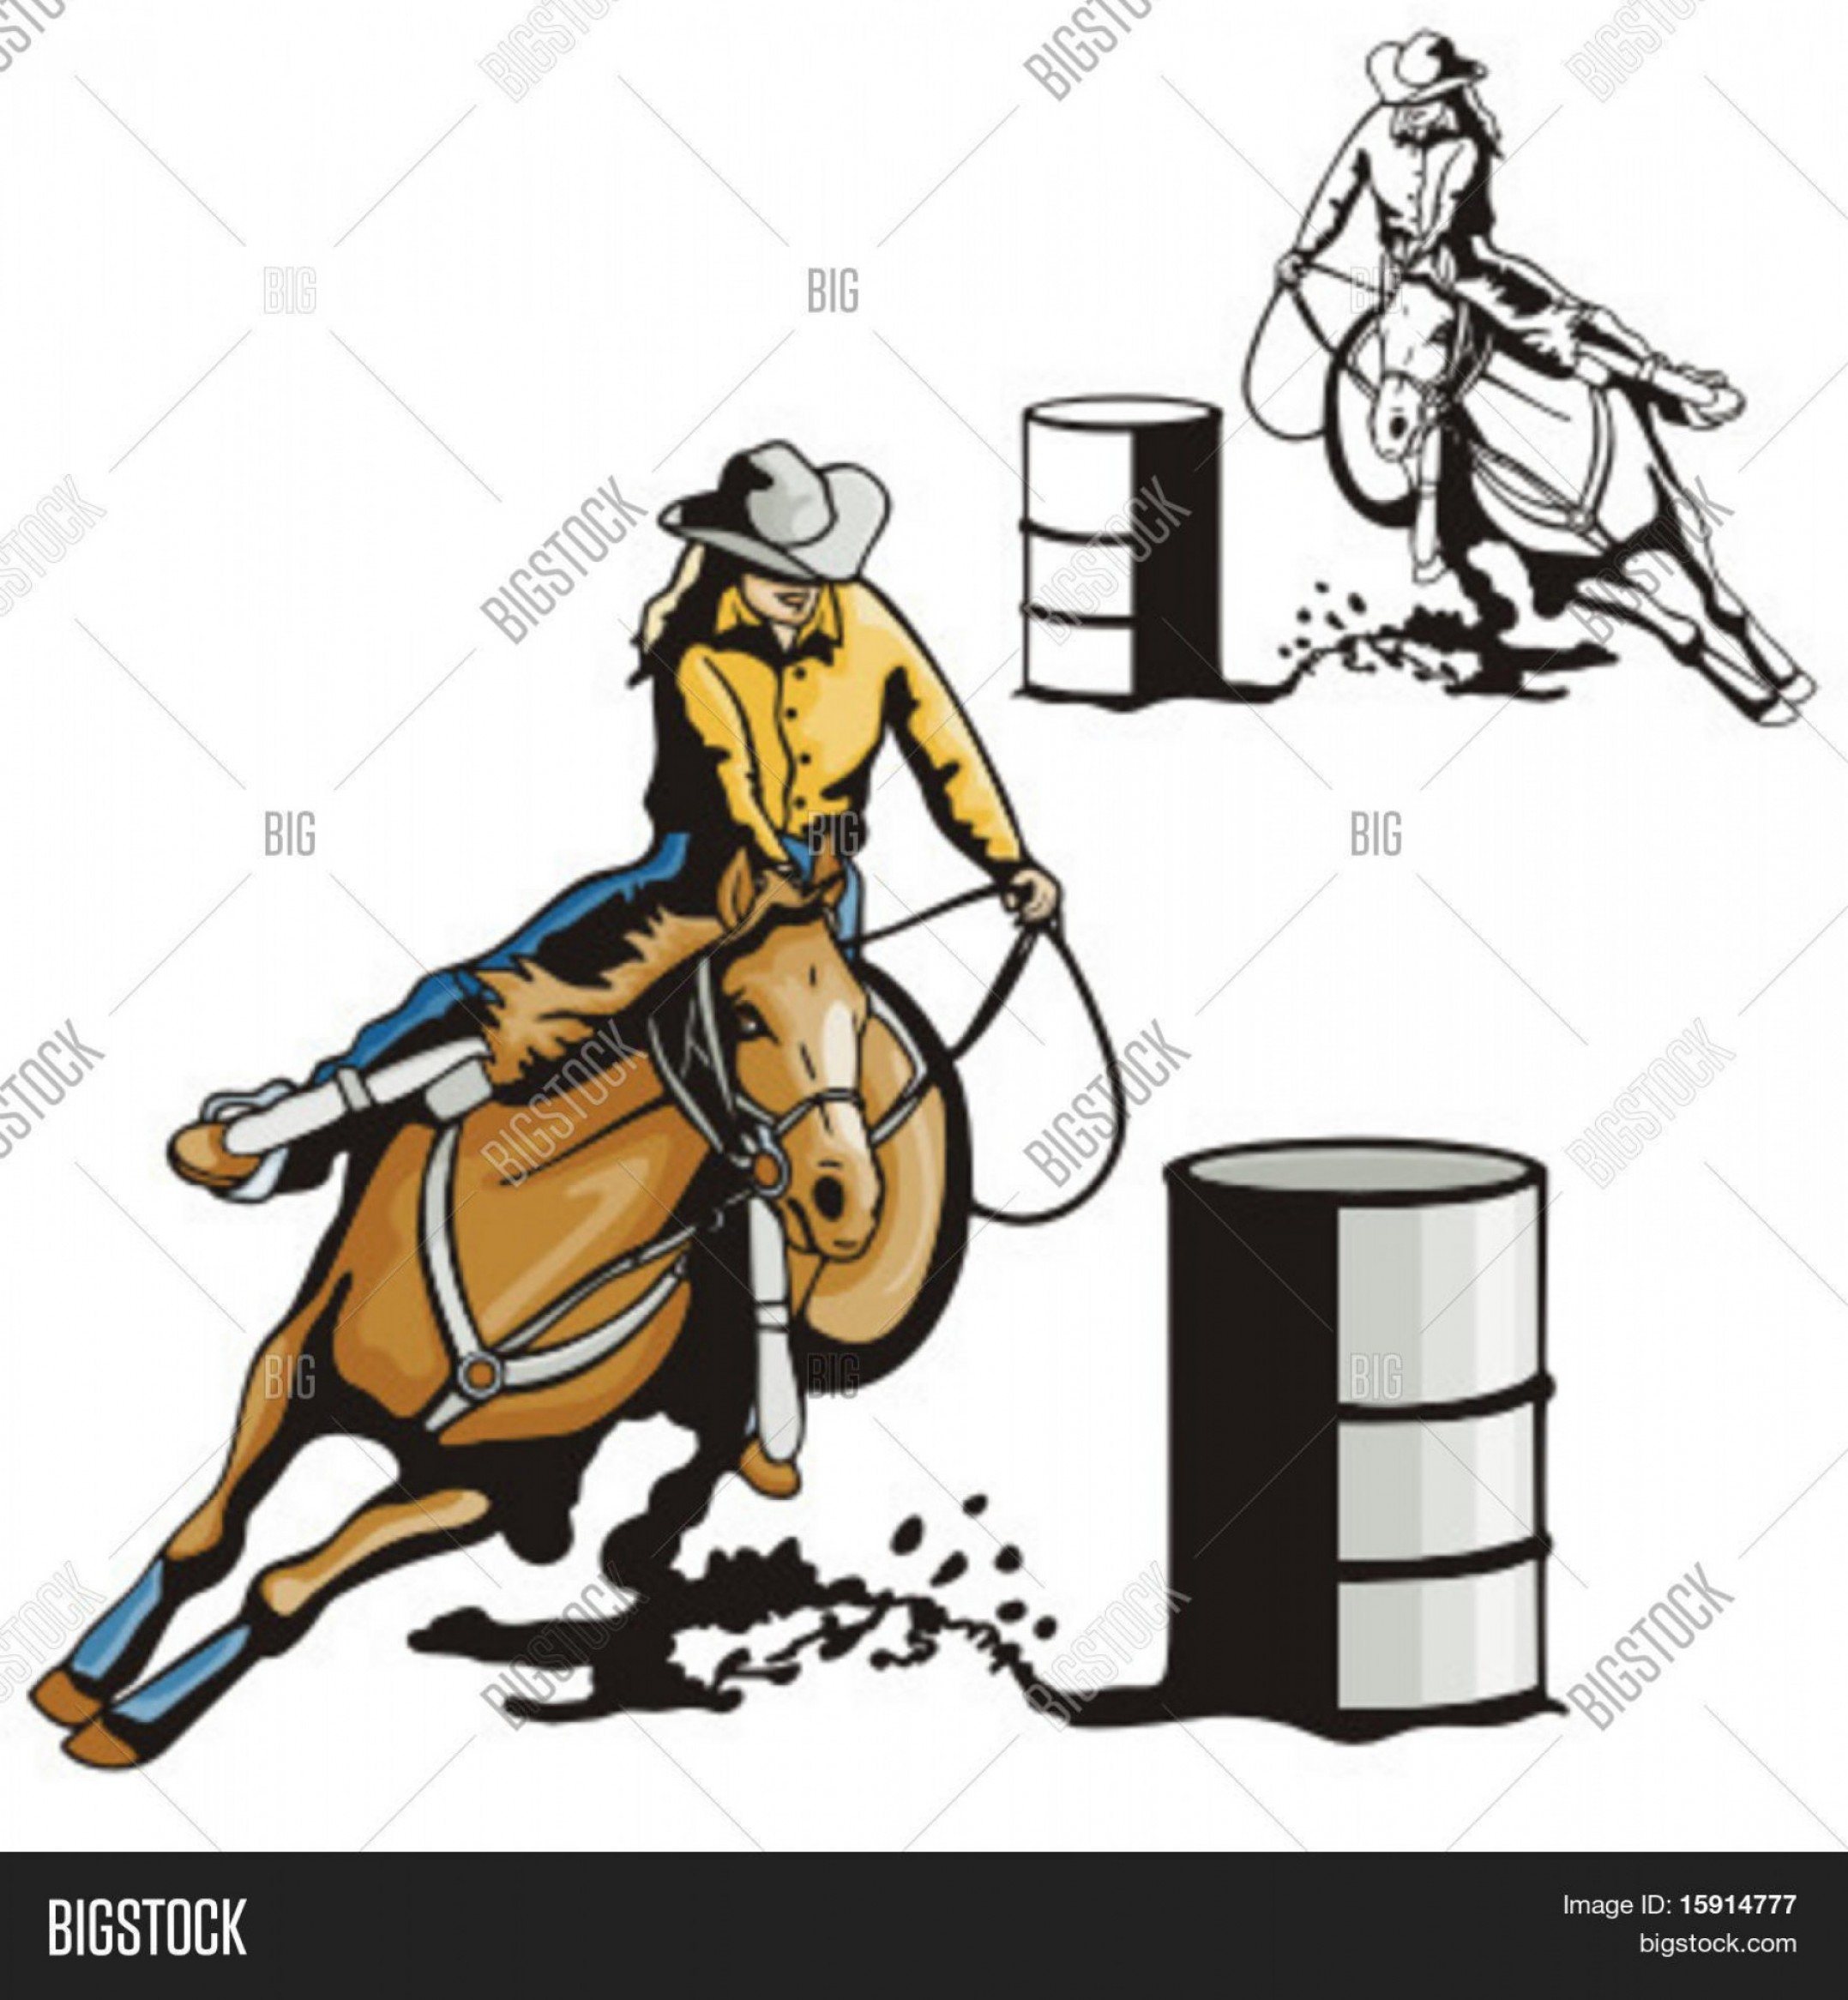 Barrel Racer Vector: Stock Vector Illustration Of A Ladies Barrel Racing